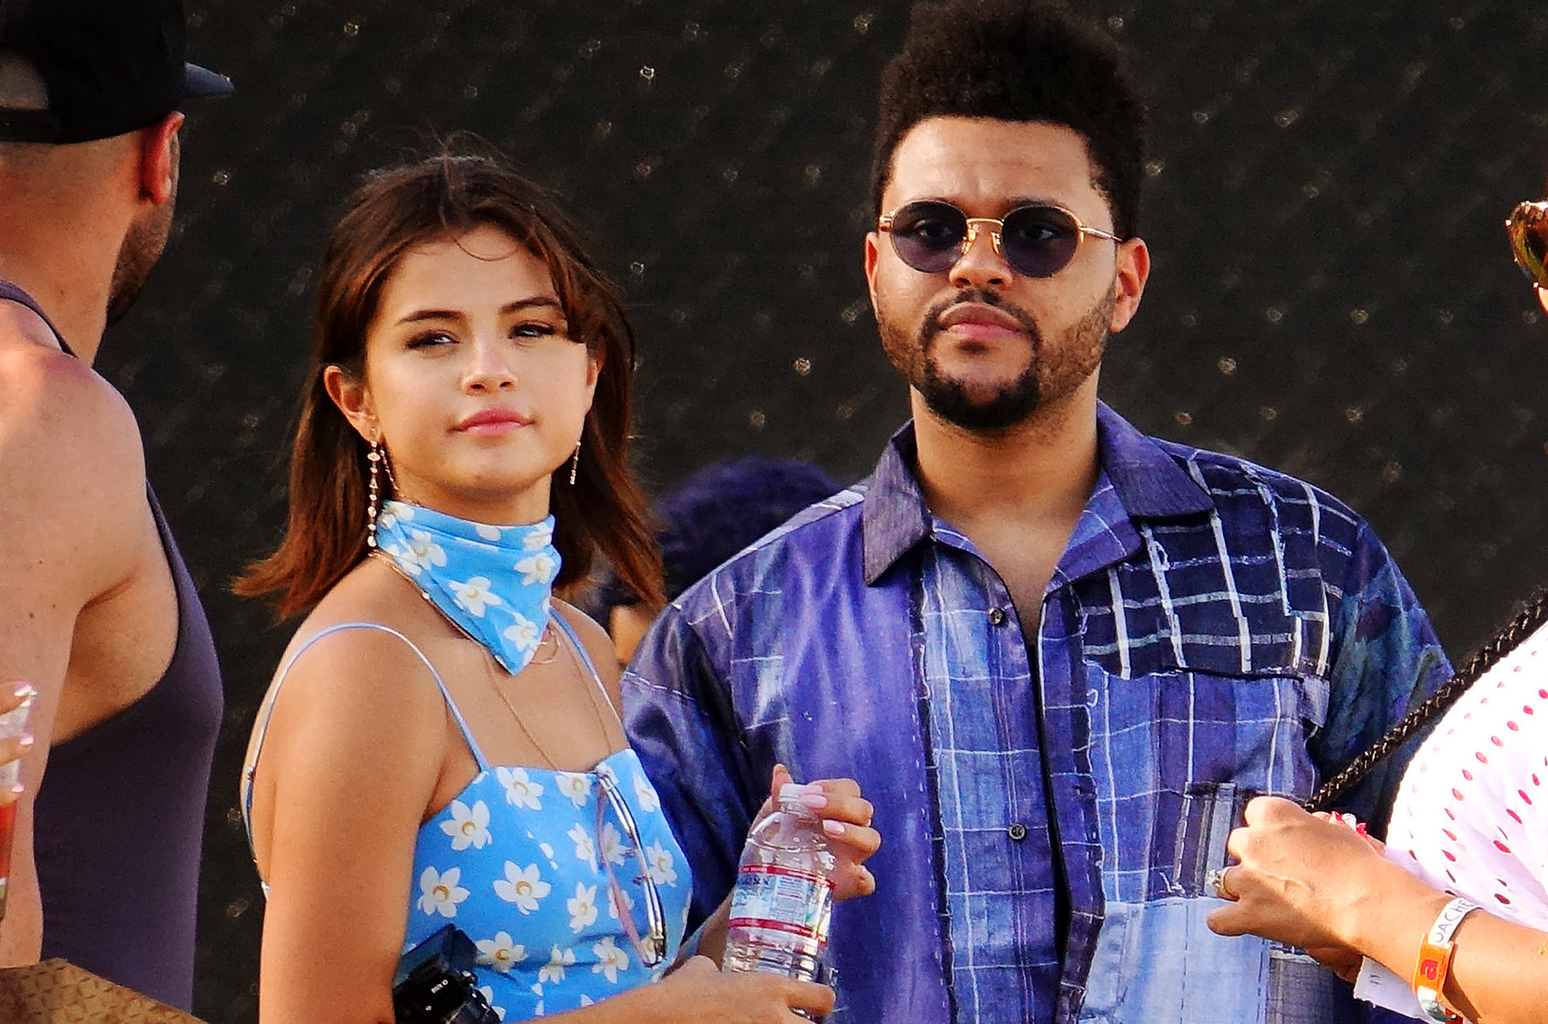 selena-gomez-the-weeknd-at-coachella-2017-billboard-1548